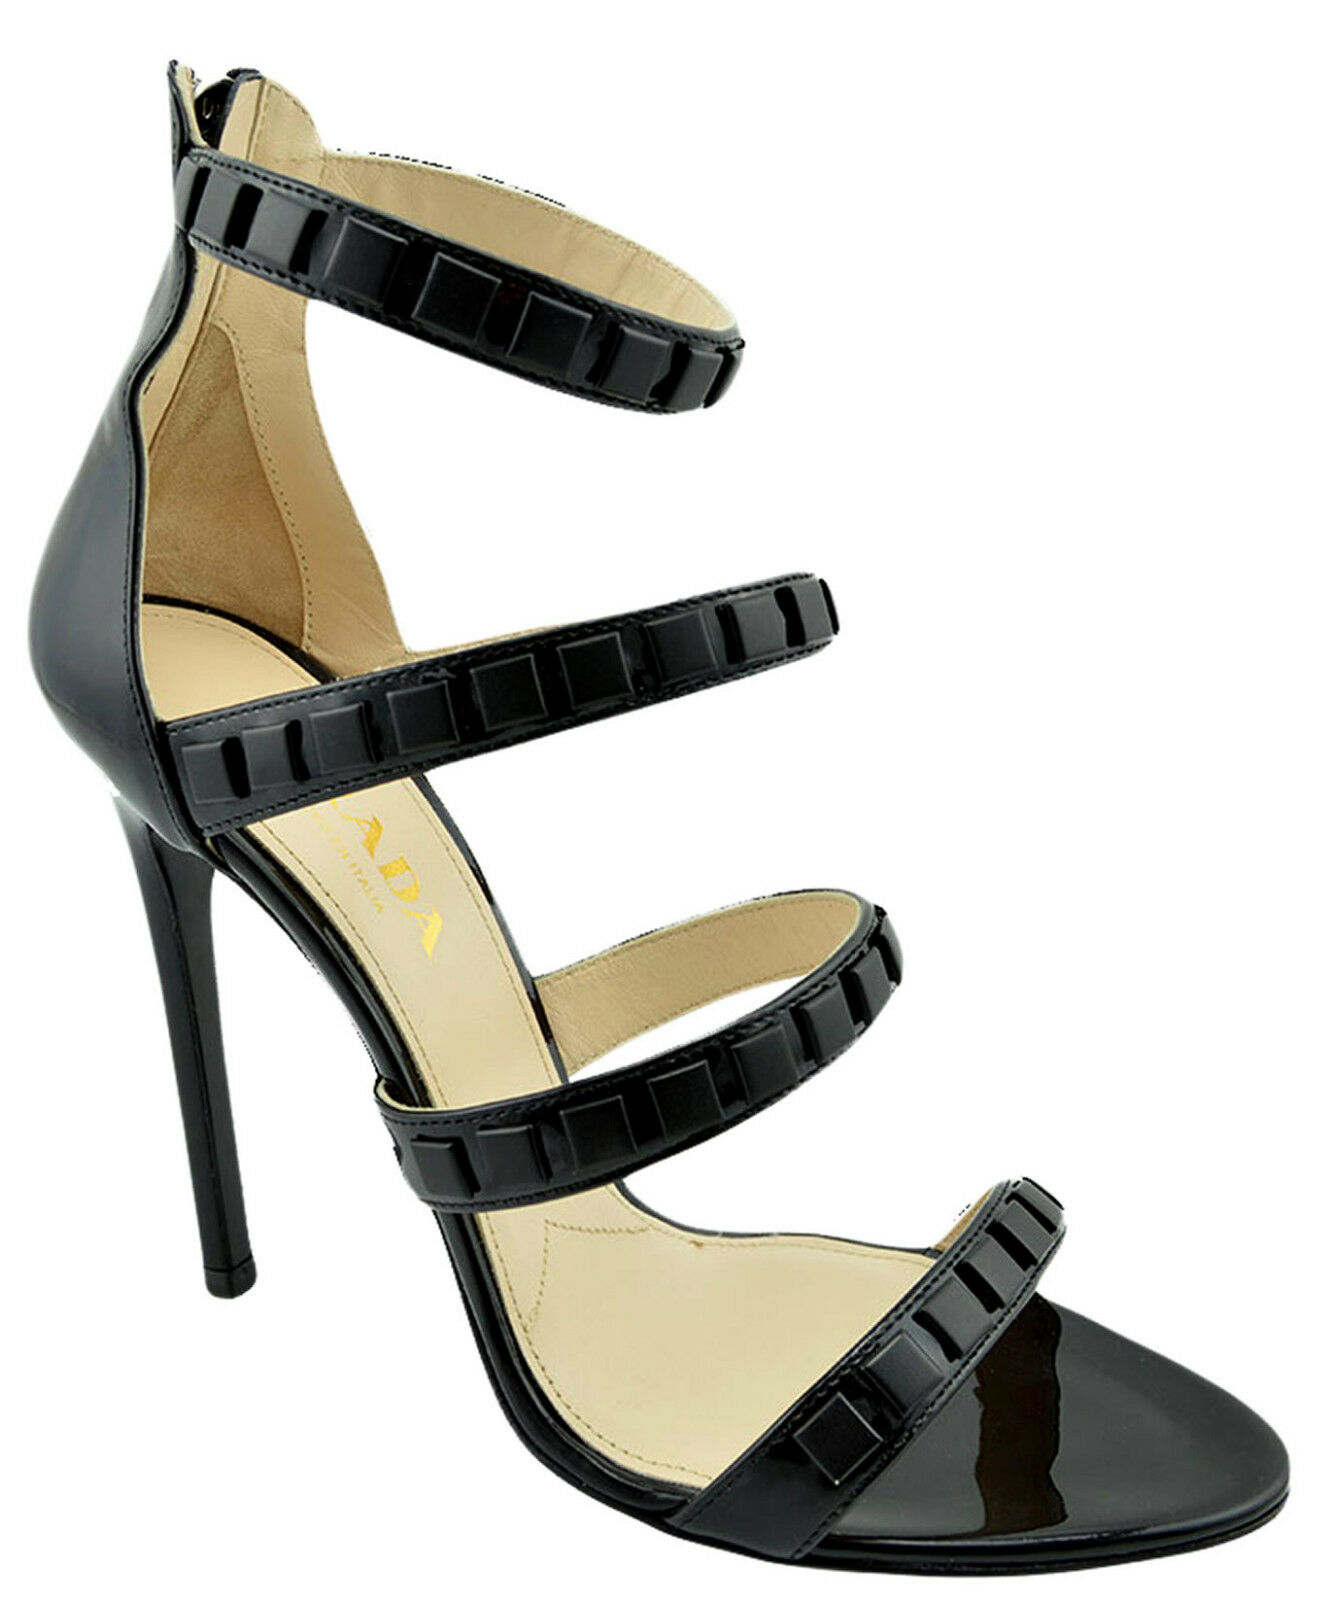 650 PRADA Black Leather VERNICE Sandals High Heels 38.5   8.5 NEW COLLECTION